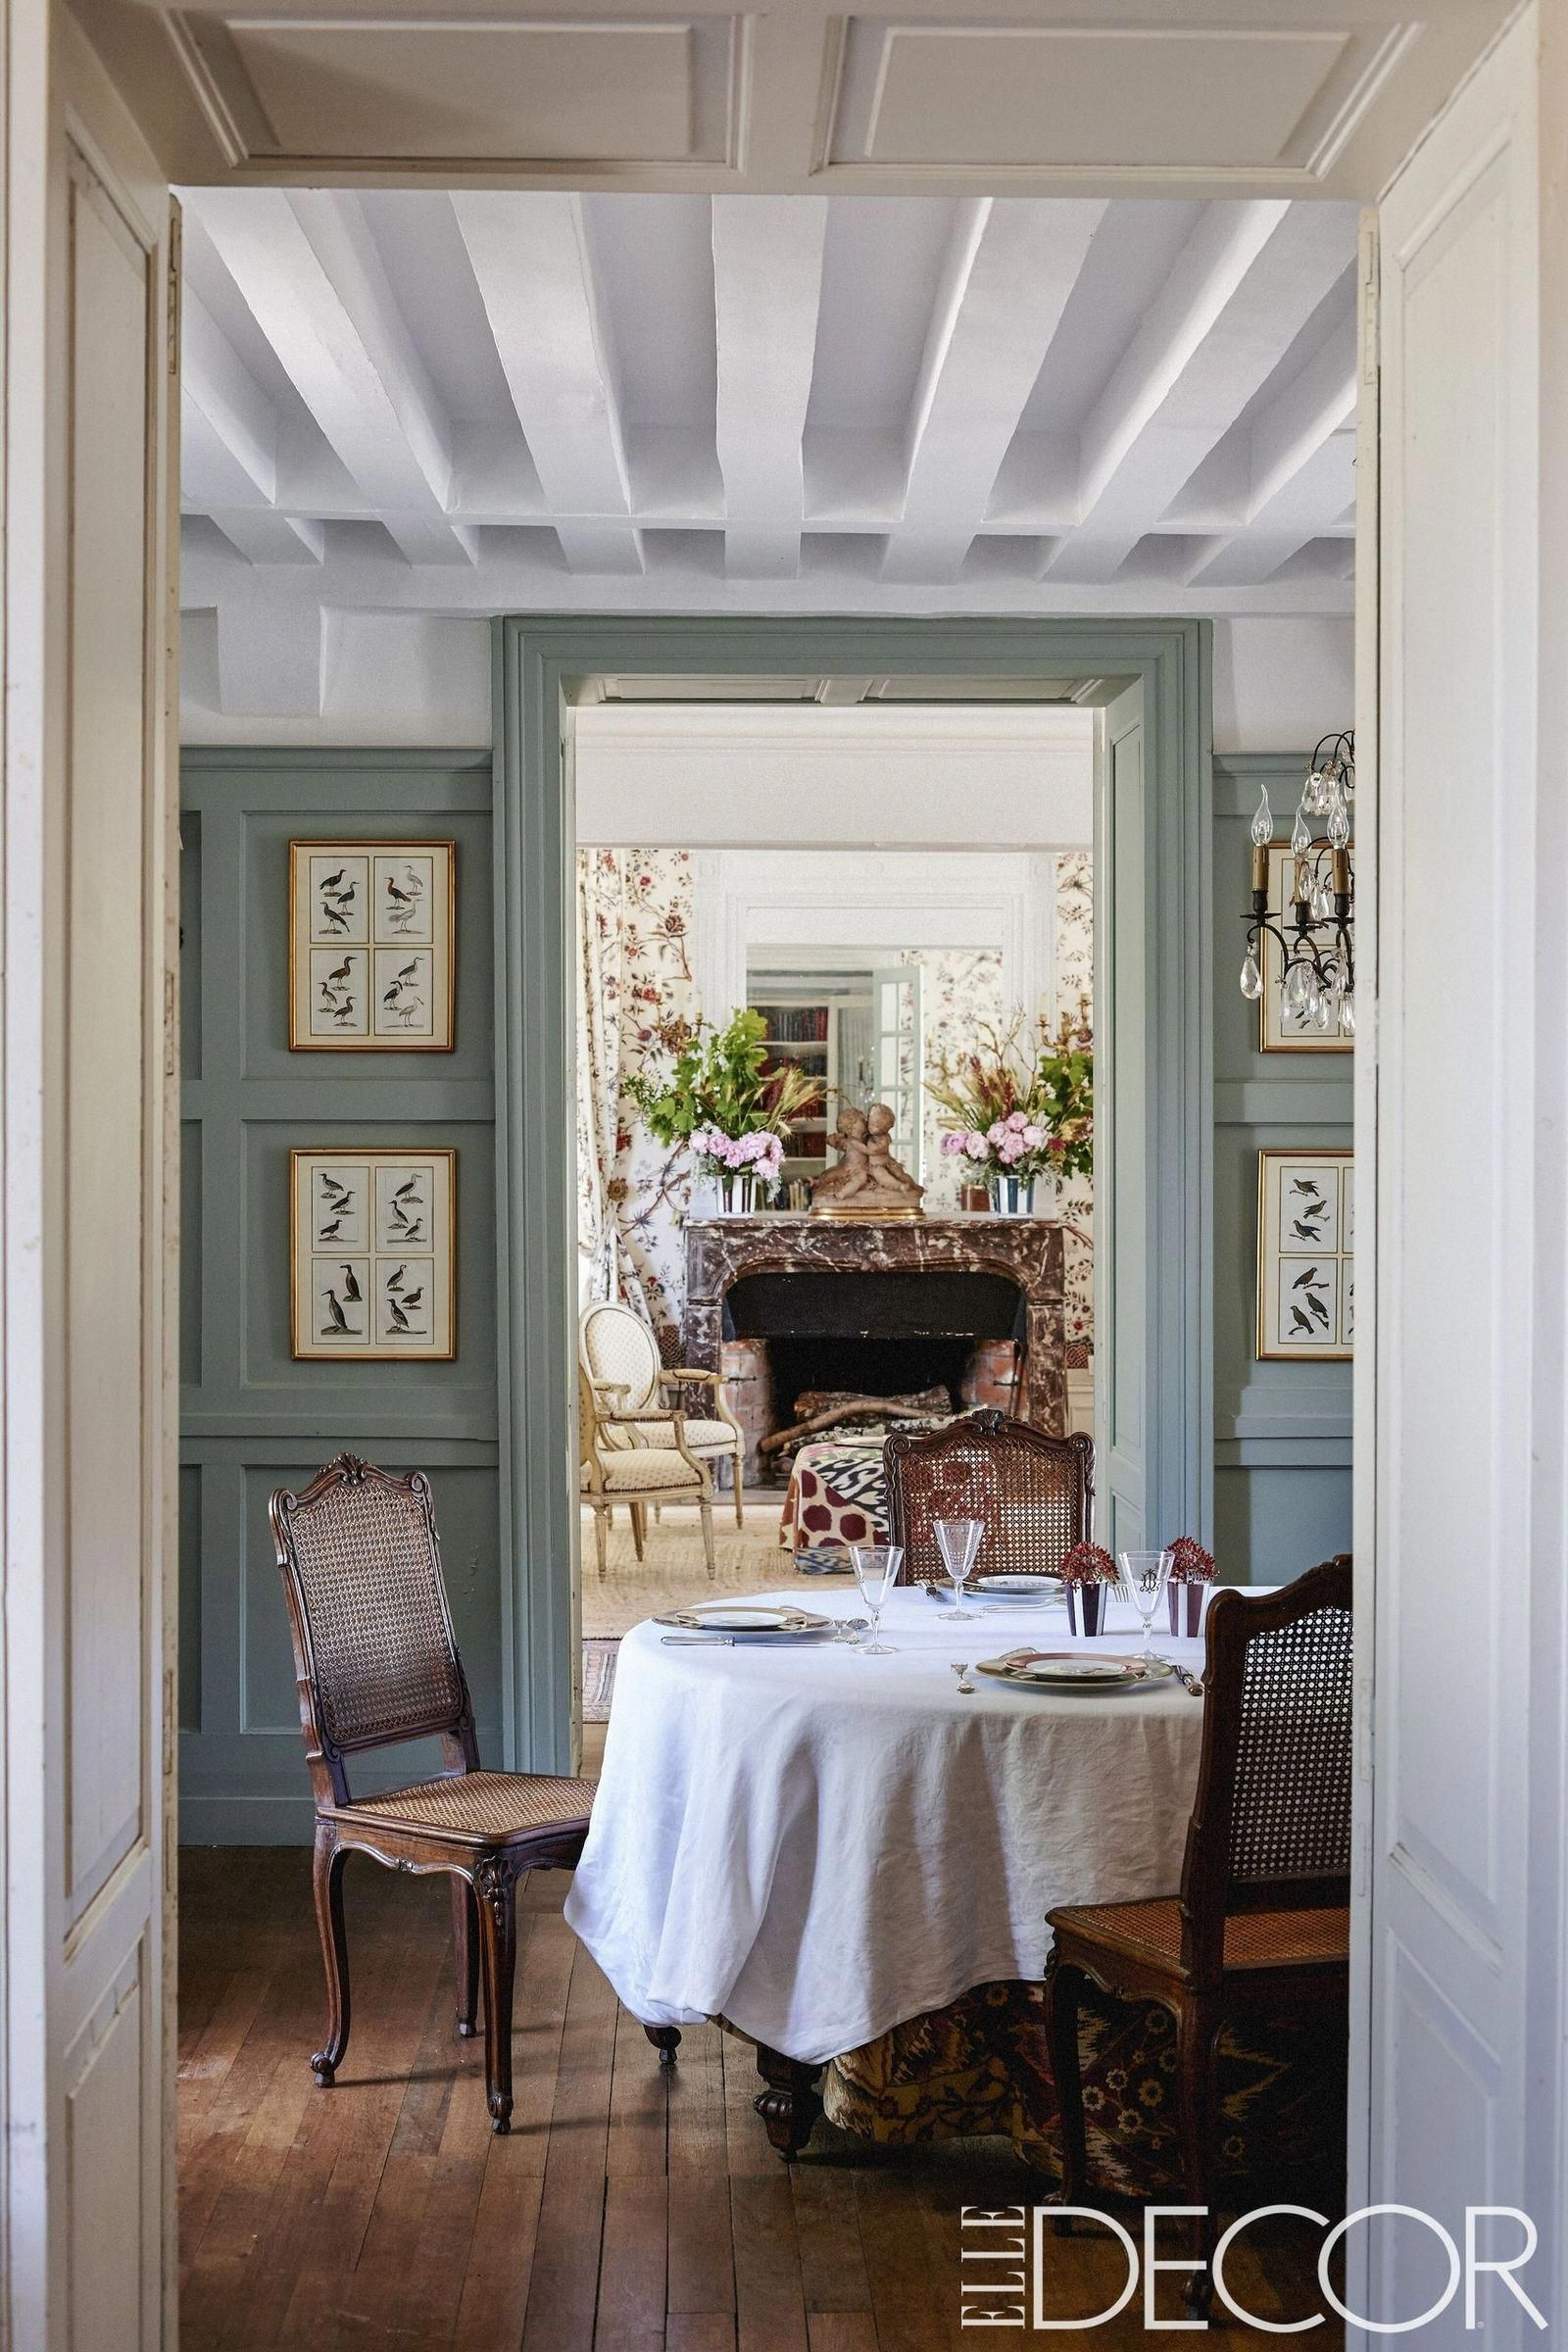 Learn About French Country Home Decorations Test Out Any Used Furniture Prior To Being Considering You Need Ensure It S Sy As Well Damage That